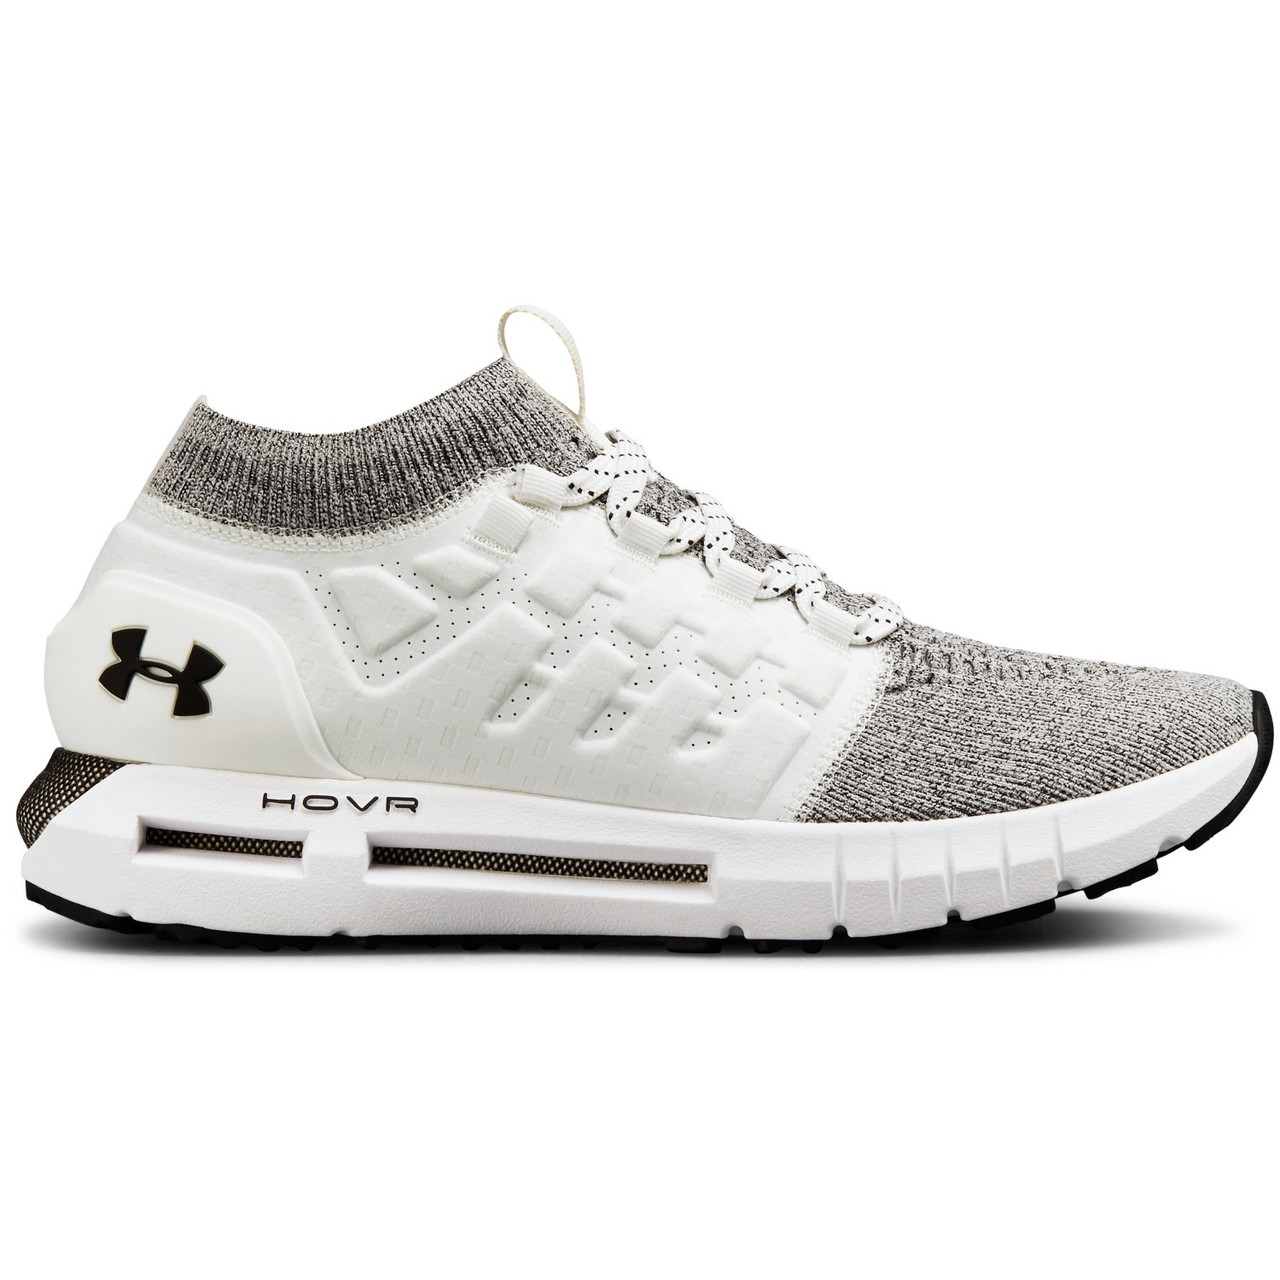 check out 0709c 679ef Men s Under Armour HOVR Phantom NC Running Shoe - Sieverts Sporting Goods